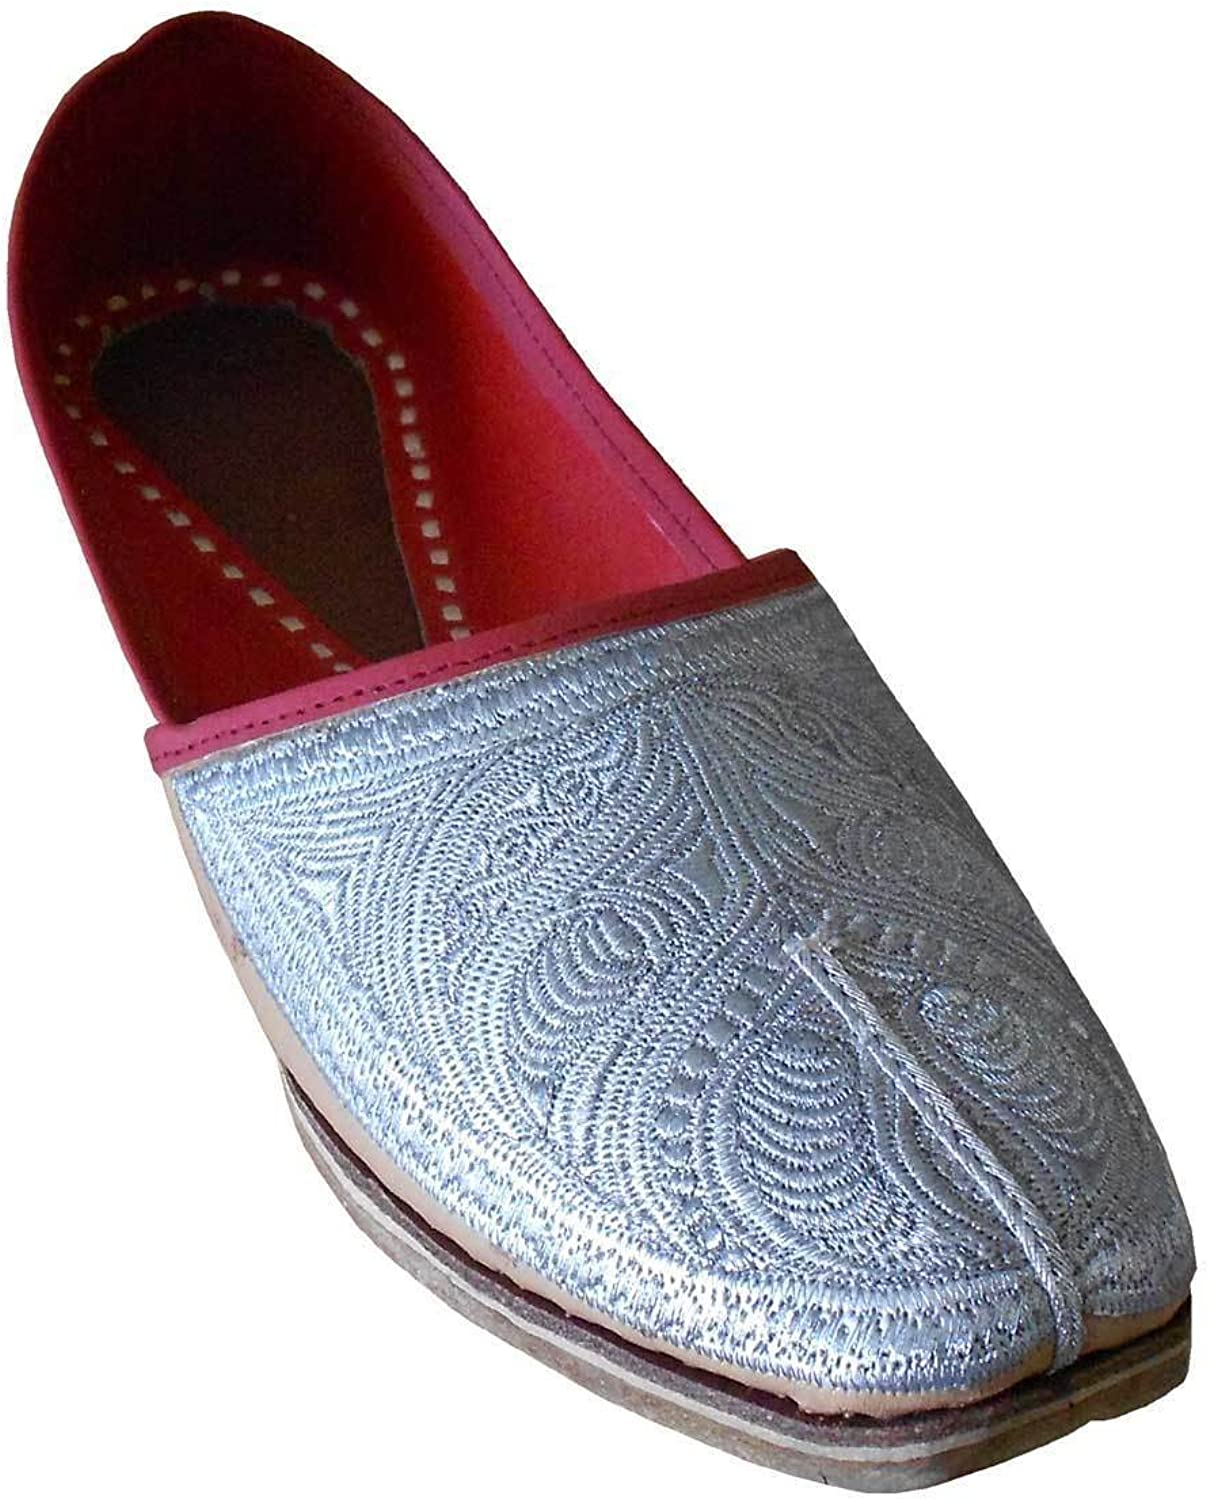 Kalra Creations Men's Traditonal Indian Faux Leather with Embroidery Designer shoes